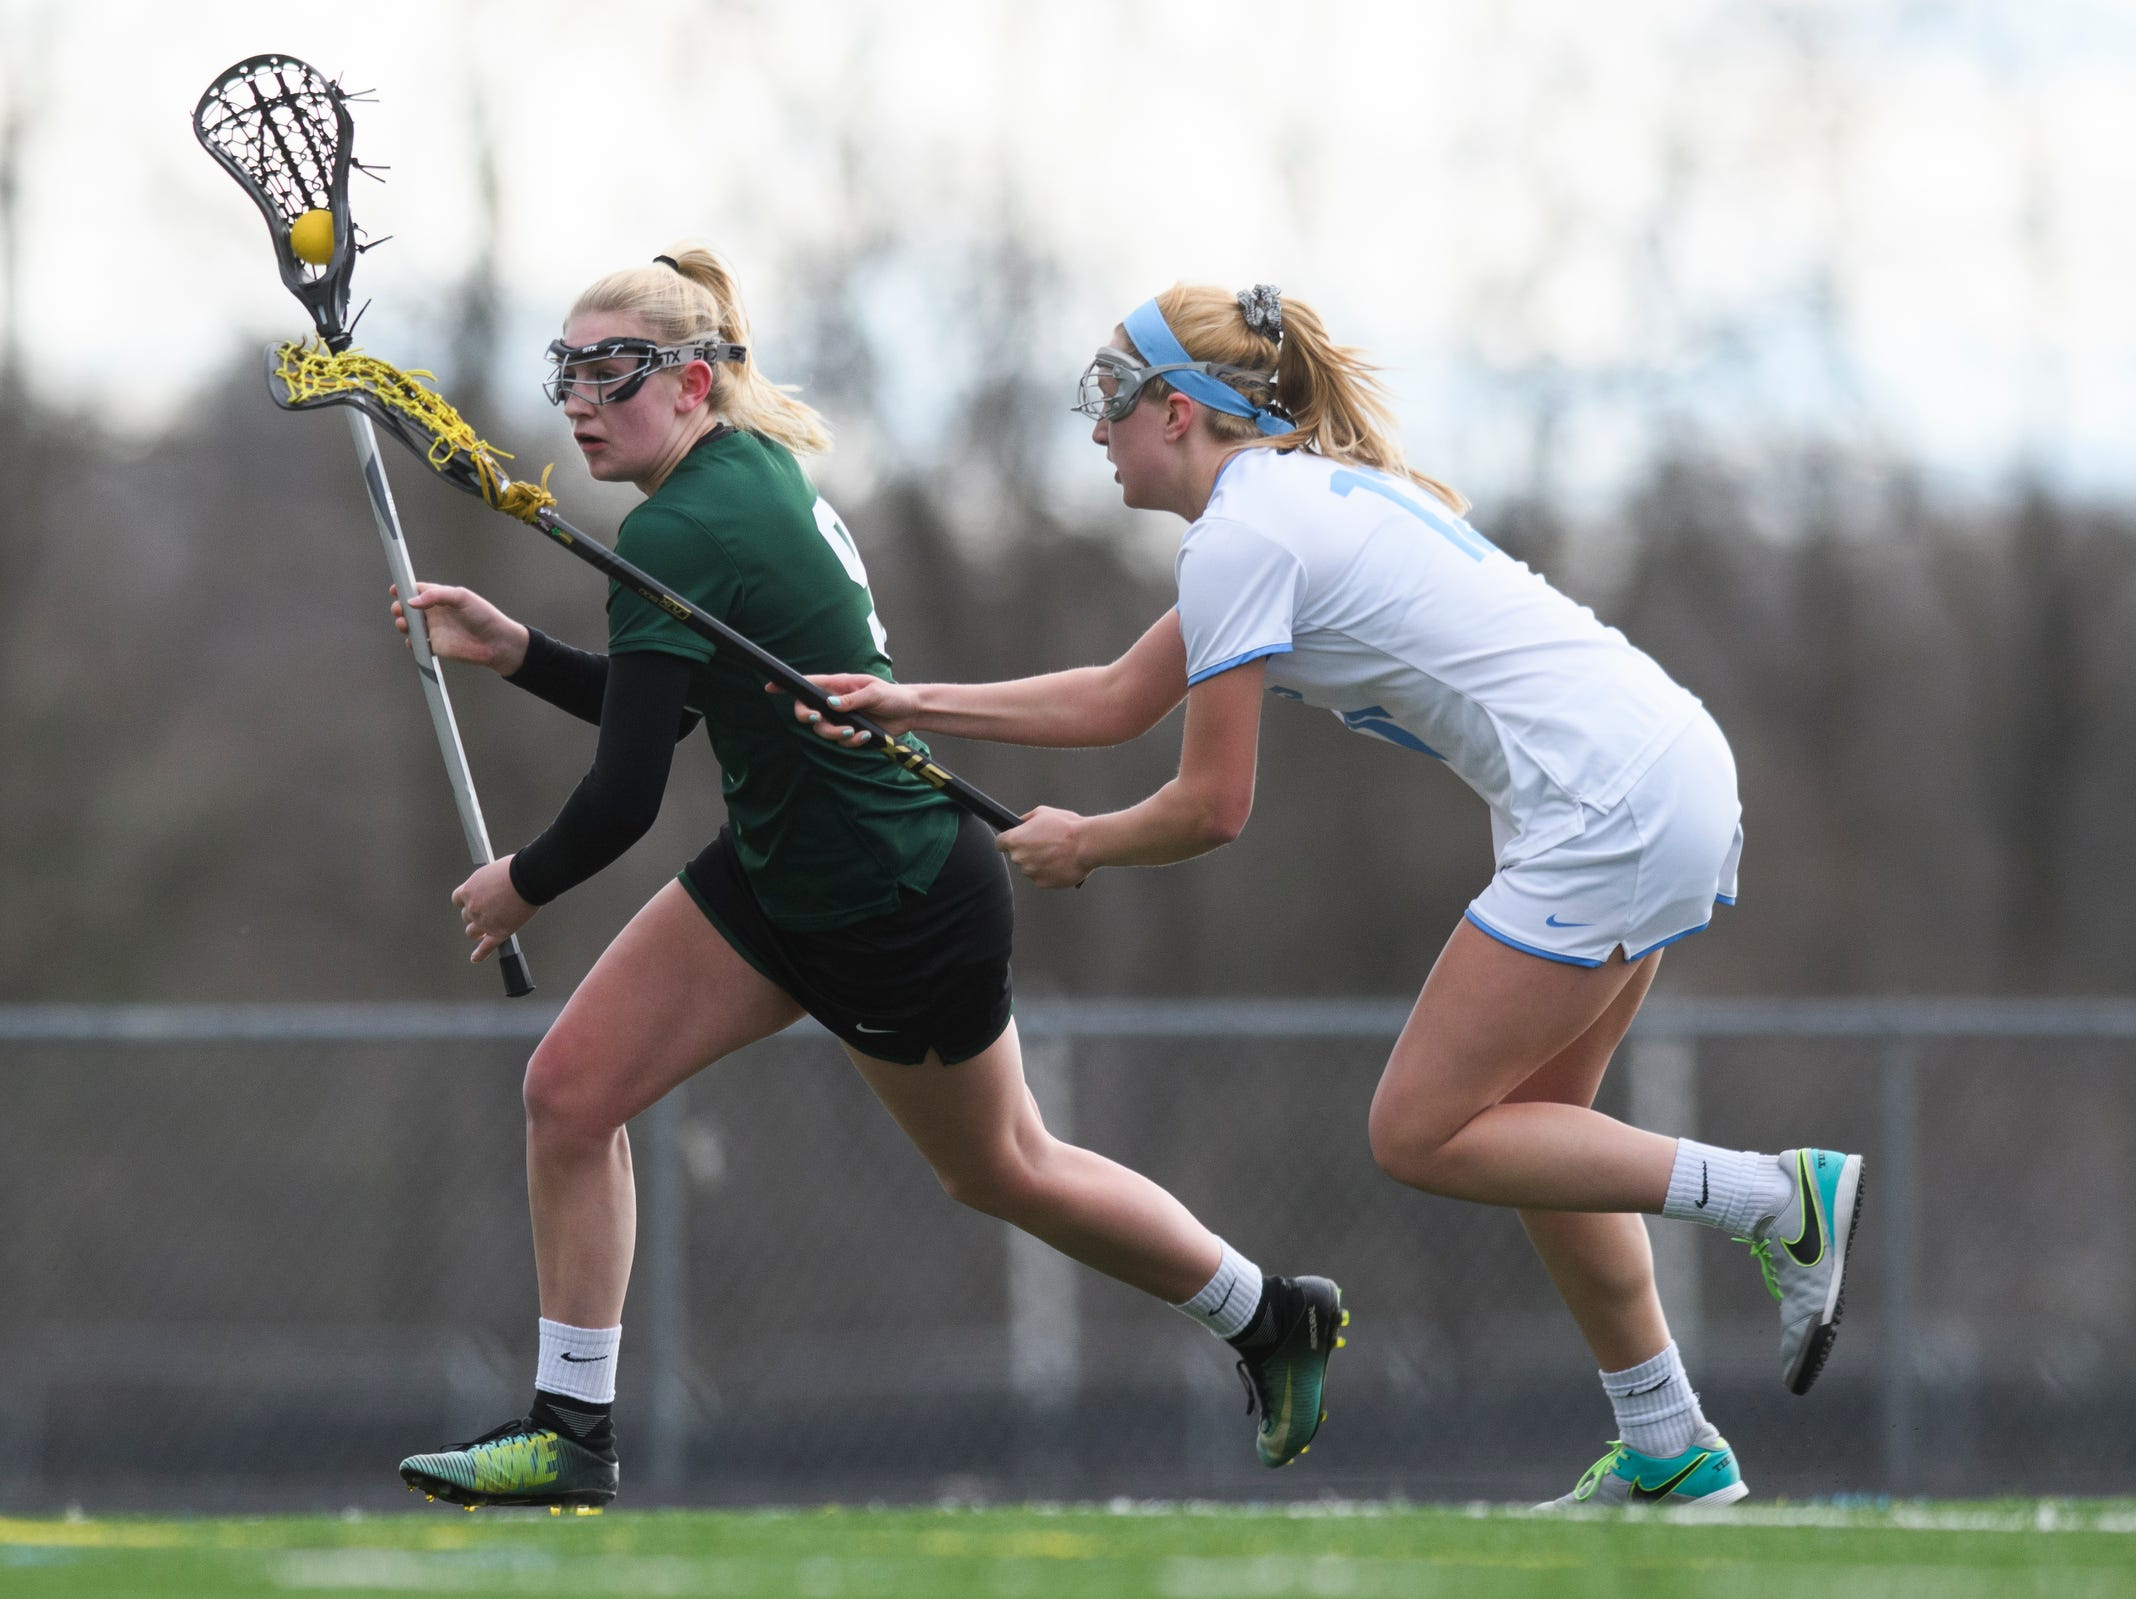 Rice's Alex Dostie (9) runs down the field with the ball past South Burlington's Caroline Desautels (13) during the girls lacrosse game between the Rice Green Knights and the South Burlington Wolves at South Burlington High School on Tuesday afternoon April 16, 2019 in South Burlington, Vermont.